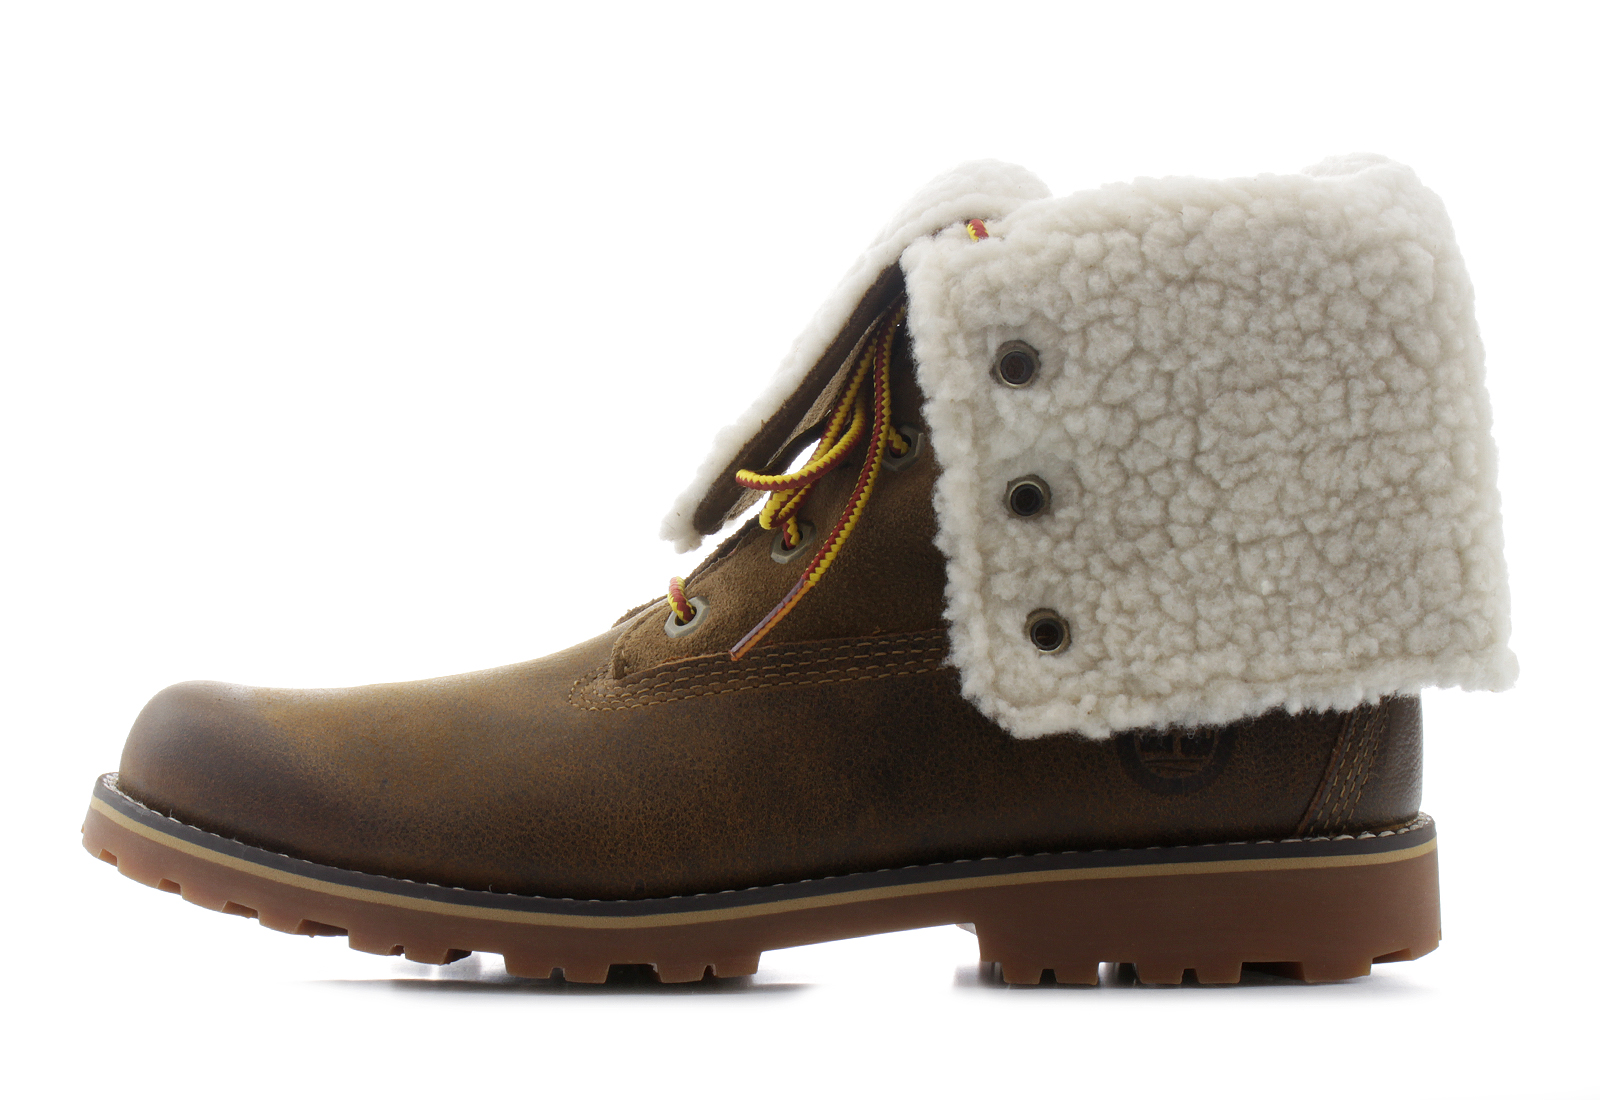 33138d87a721 Timberland Boty 6 Inch Shrl Boot 3